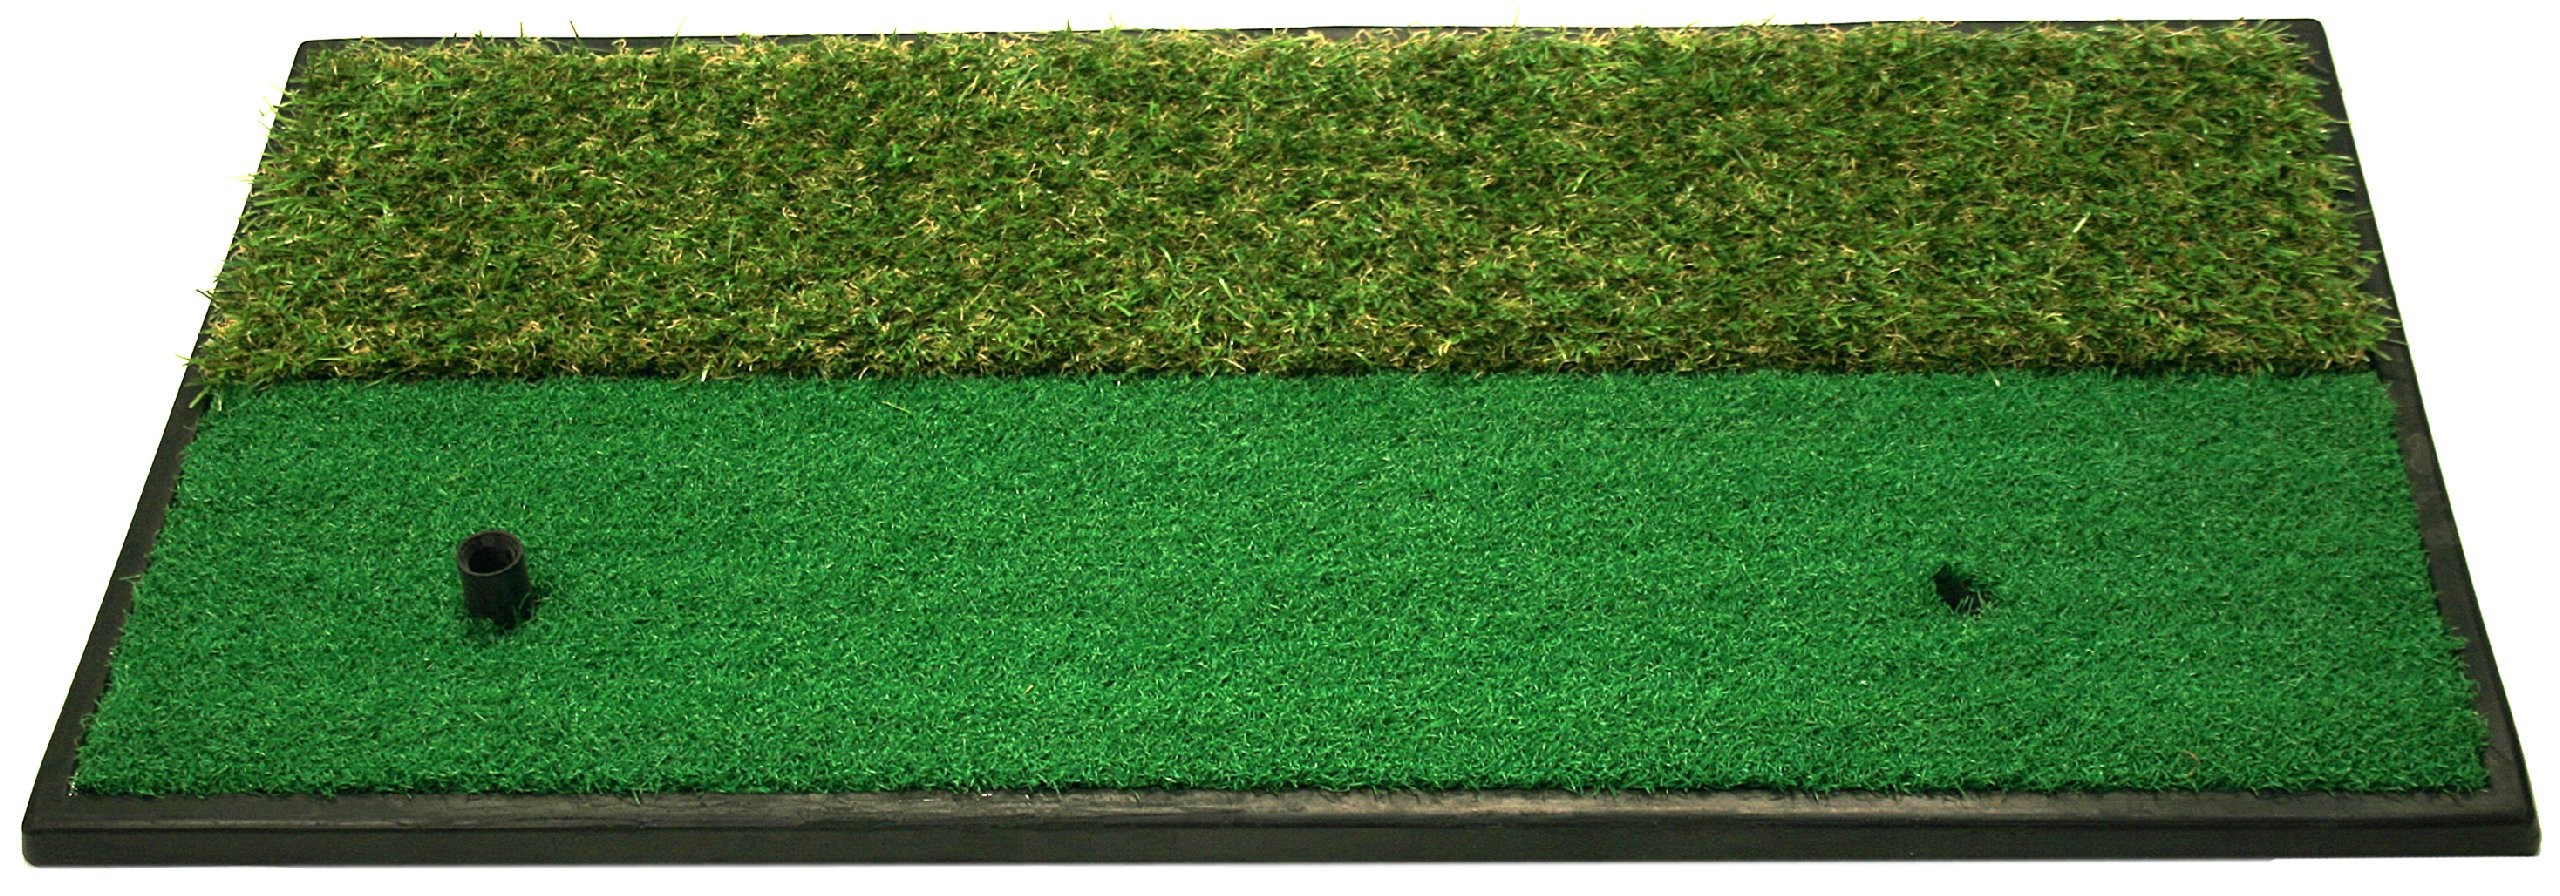 ProActive Sports Dual-Surface Hitting/Practice, Chipping and Driving Golf Grass Mat with Fairway and Rough Surfaces